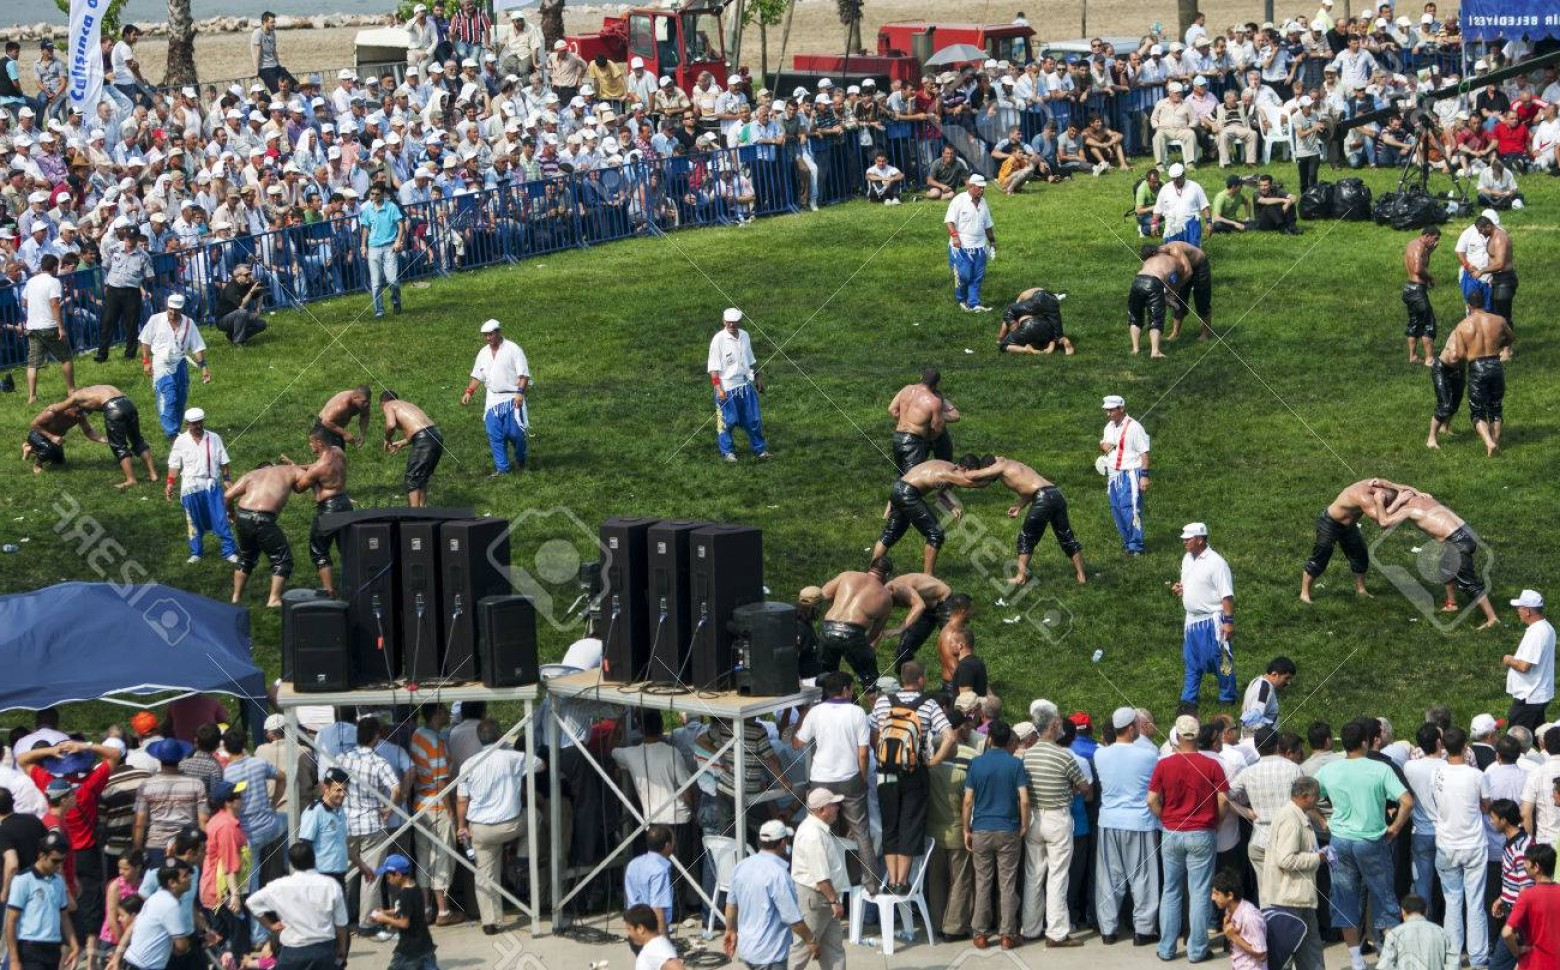 Vector Wrestling Audience: Photowrestlers Battle In Front Of A Large Crowd At The Izmit Turkish Oil Wrestling Festival In Turkey